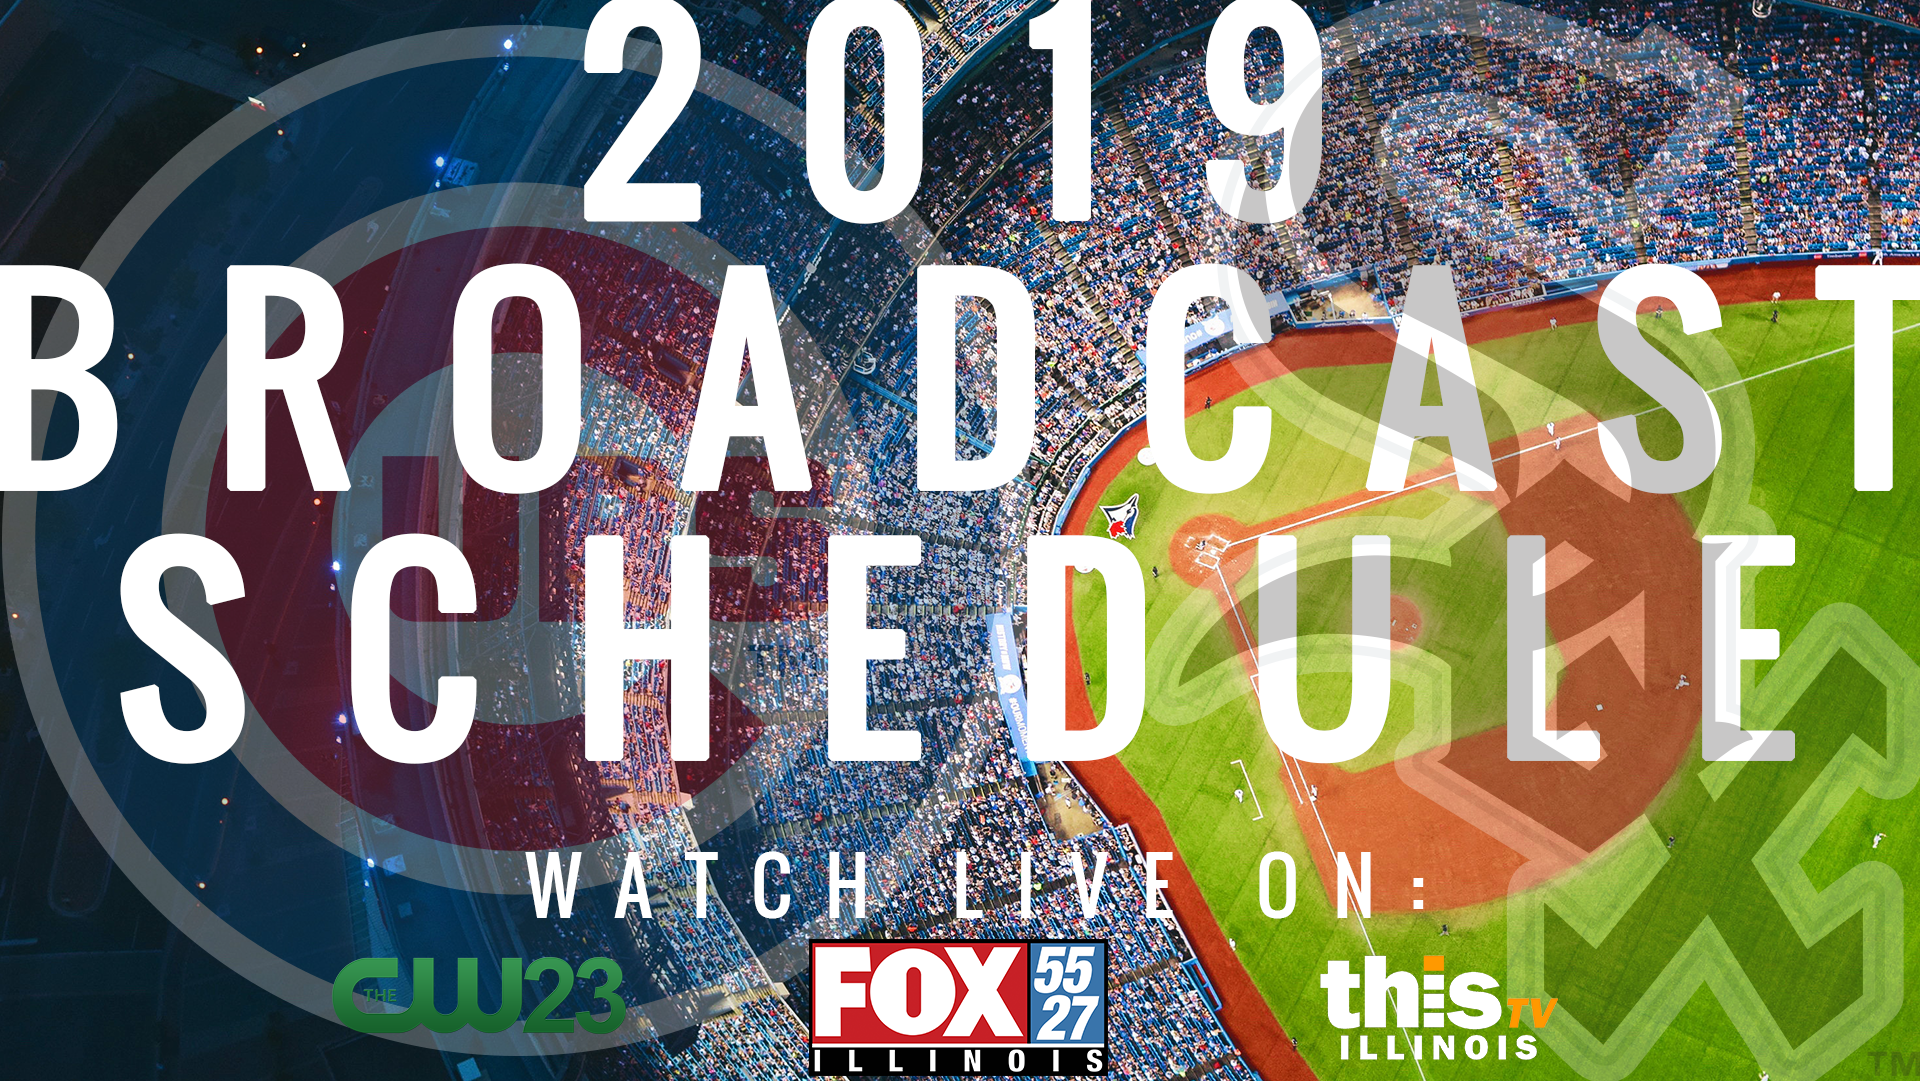 Get ready because Cubs and White Sox baseball is back in Central Illinois! Watch live game broadcasts on FOX Illinois, CW23 and ThisTV in your local area.